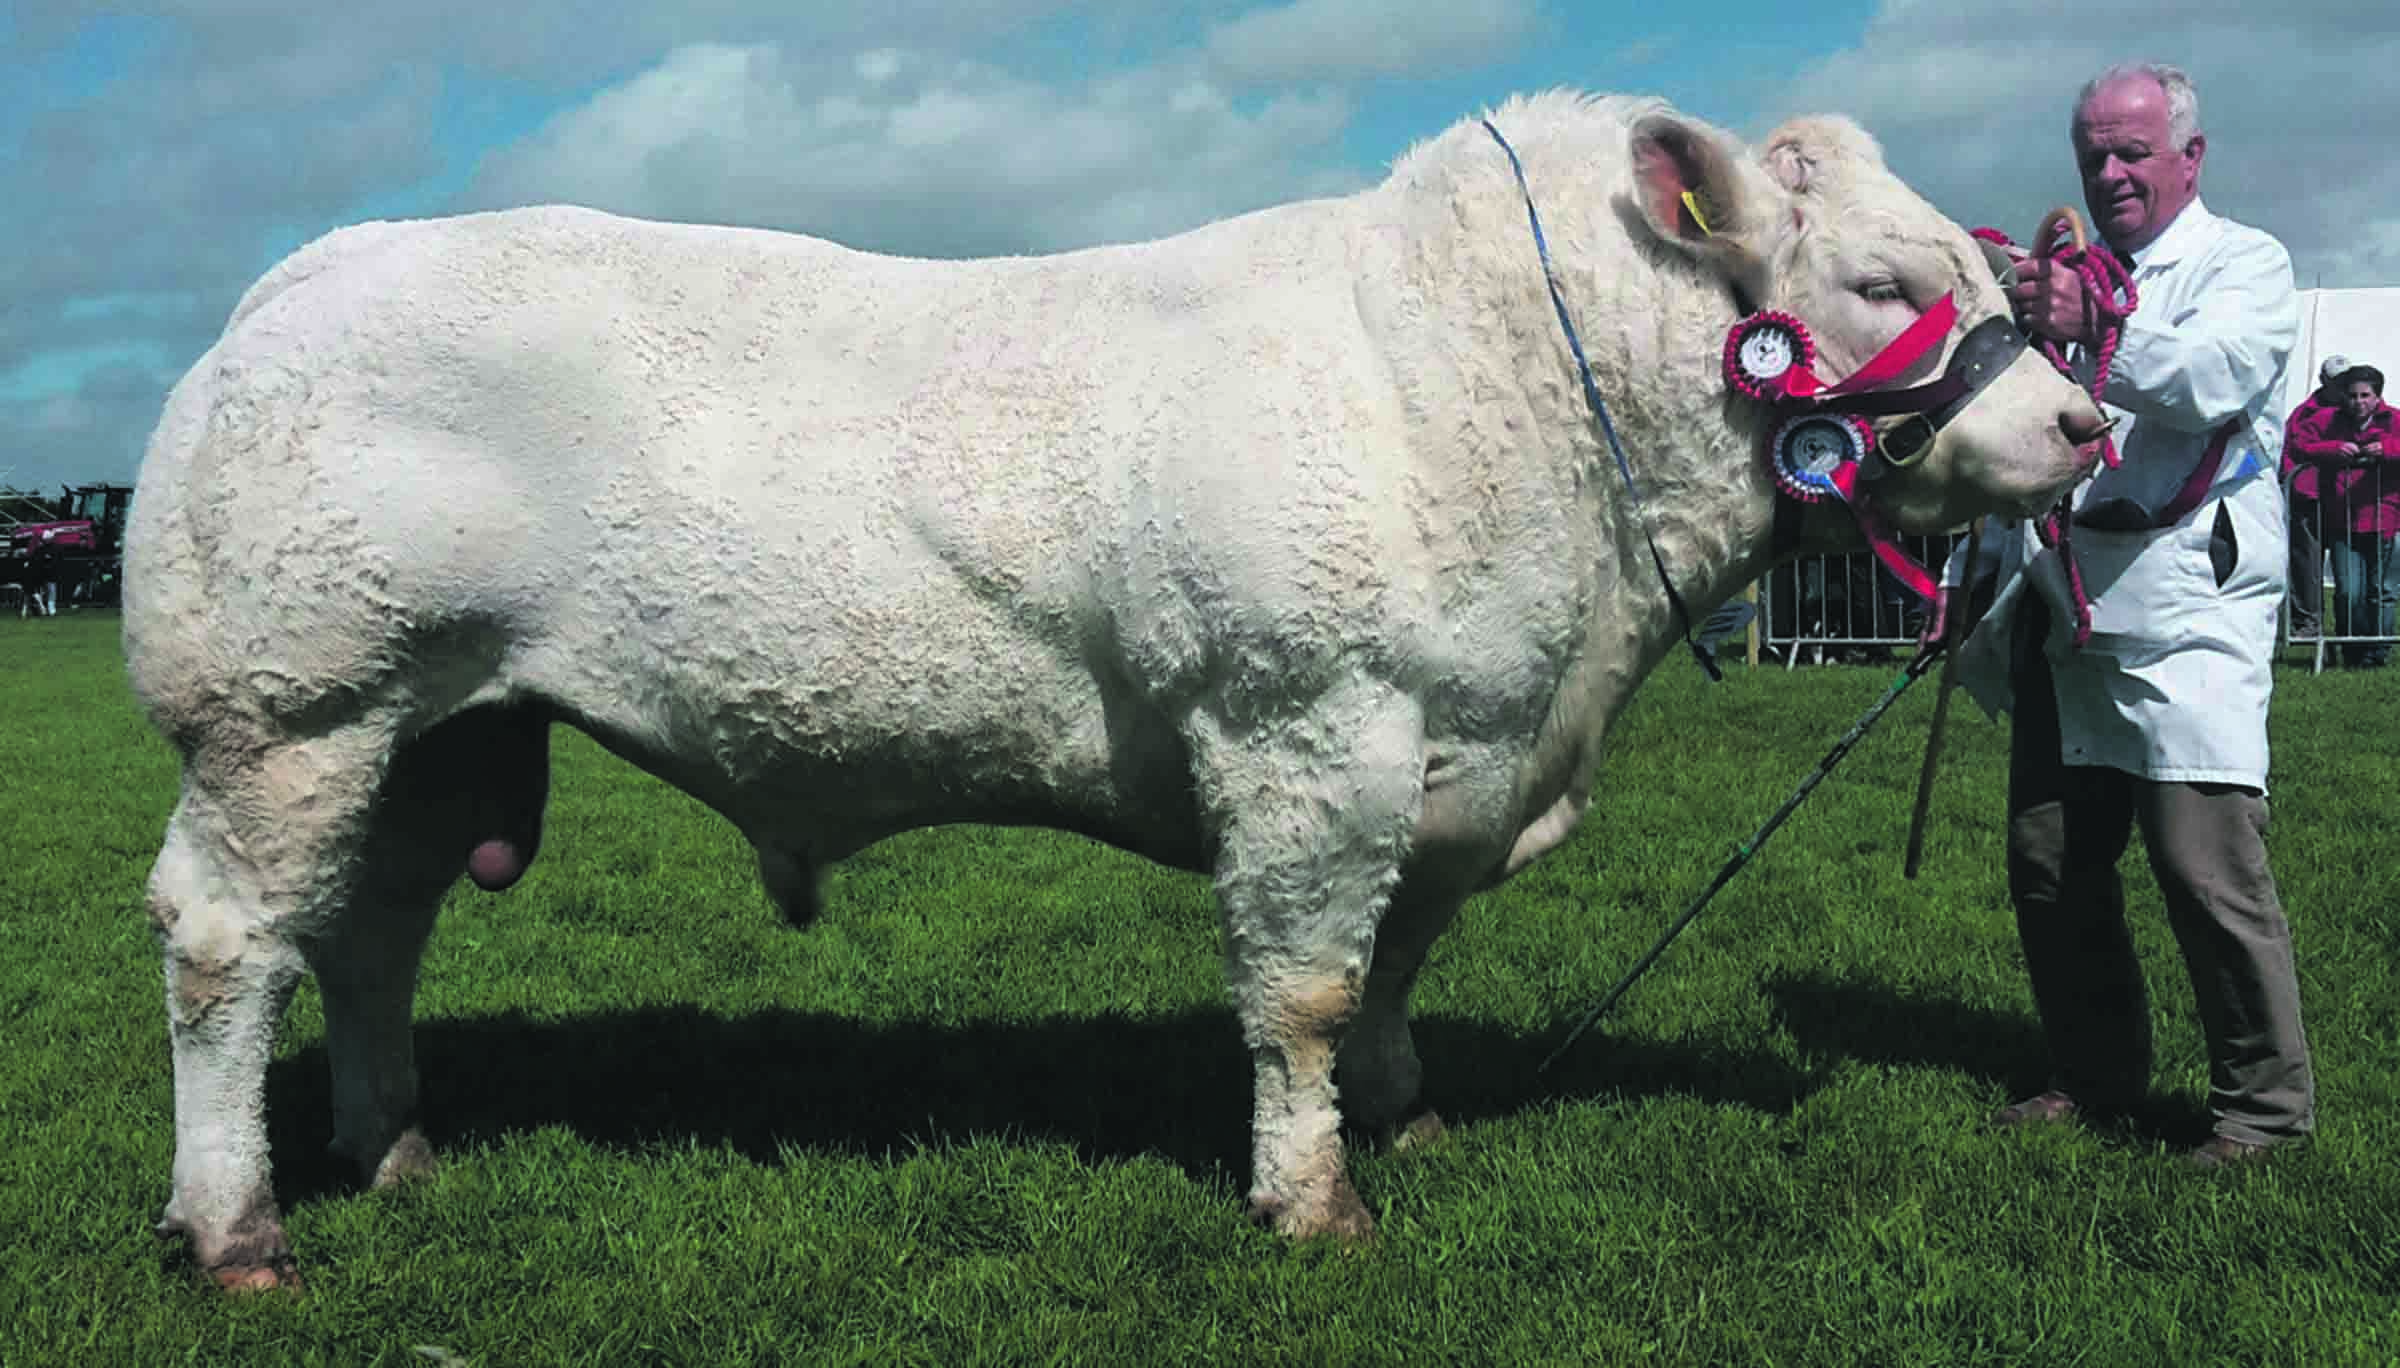 P.W. and V. Vasey's Sandleford Harrison won the inter-breed champion and champion of champions